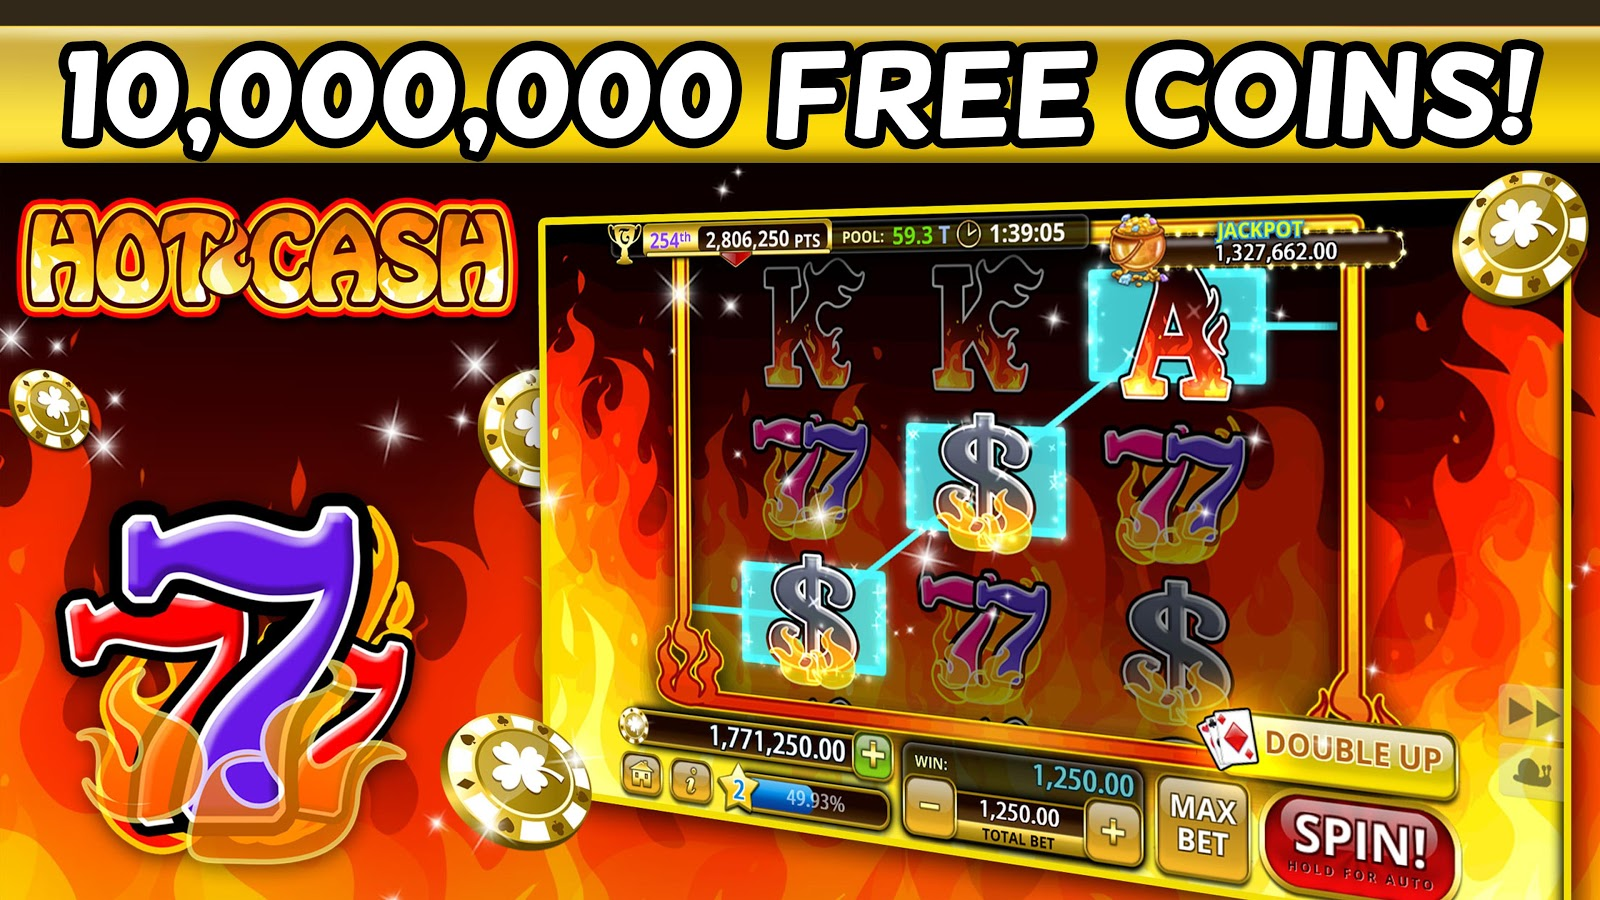 Free Video Slots Online - Win at Video Slot Machines Now! No Download or Registration - 2